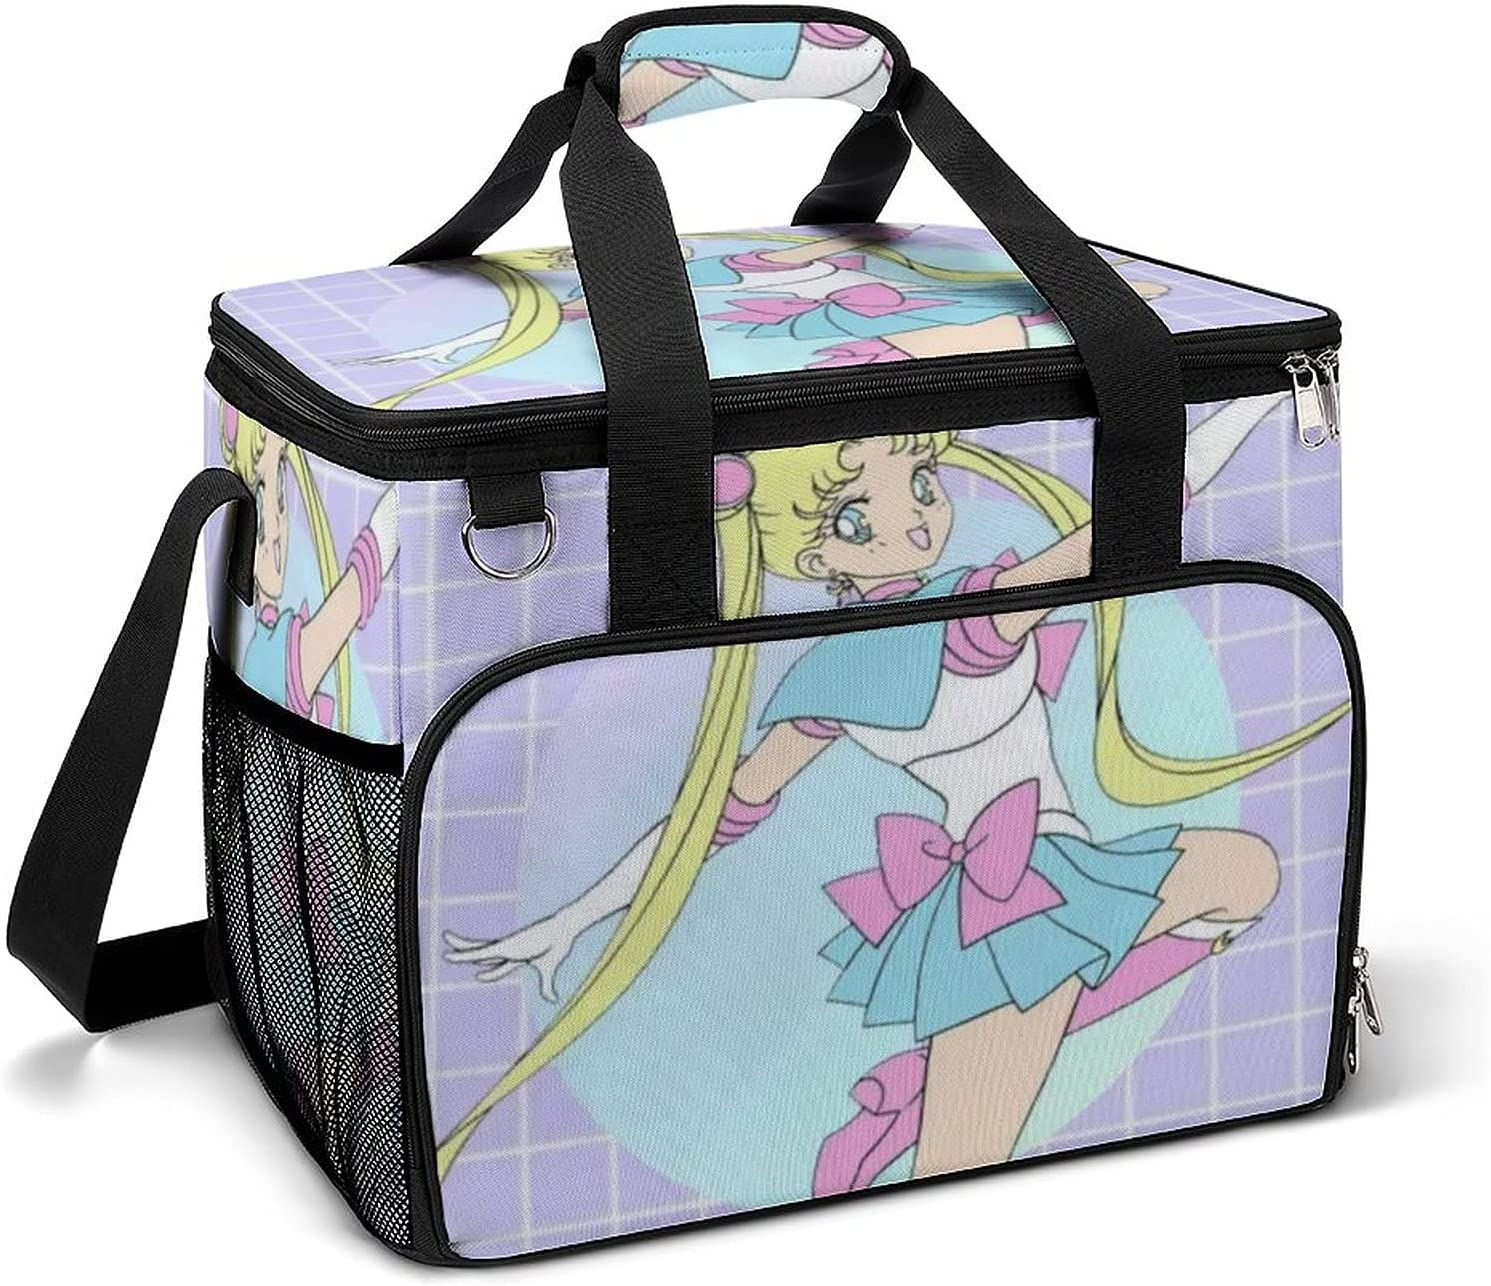 Large Anime Cooler Virginia Beach Mall Bag Lunch Insu 2021new shipping free ice Camping pack Airtight